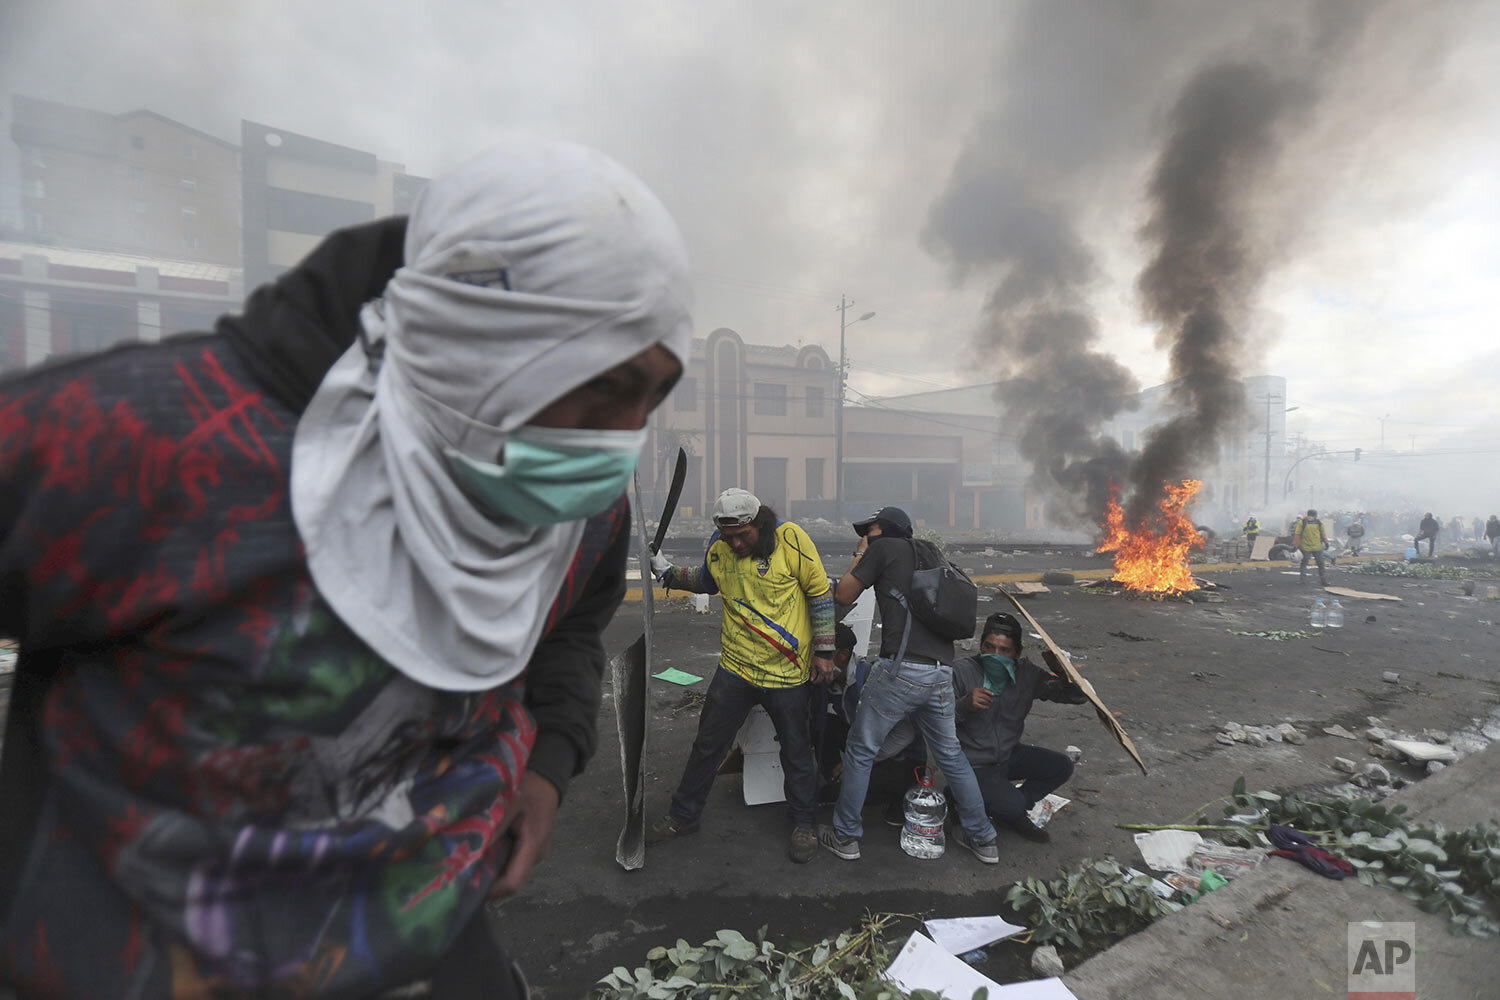 Anti-government demonstrators clash with the police near the national assembly building in Quito, Ecuador, Saturday, Oct. 12, 2019. Indigenous leaders of protests that have paralyzed Ecuador's economy for nearly a week say they are willing to negotiate with President Lenin Moreno, signaling a possible exit from the crisis, which was triggered by the cancellation of fuel subsidies by Moreno. (AP Photo/Dolores Ochoa)